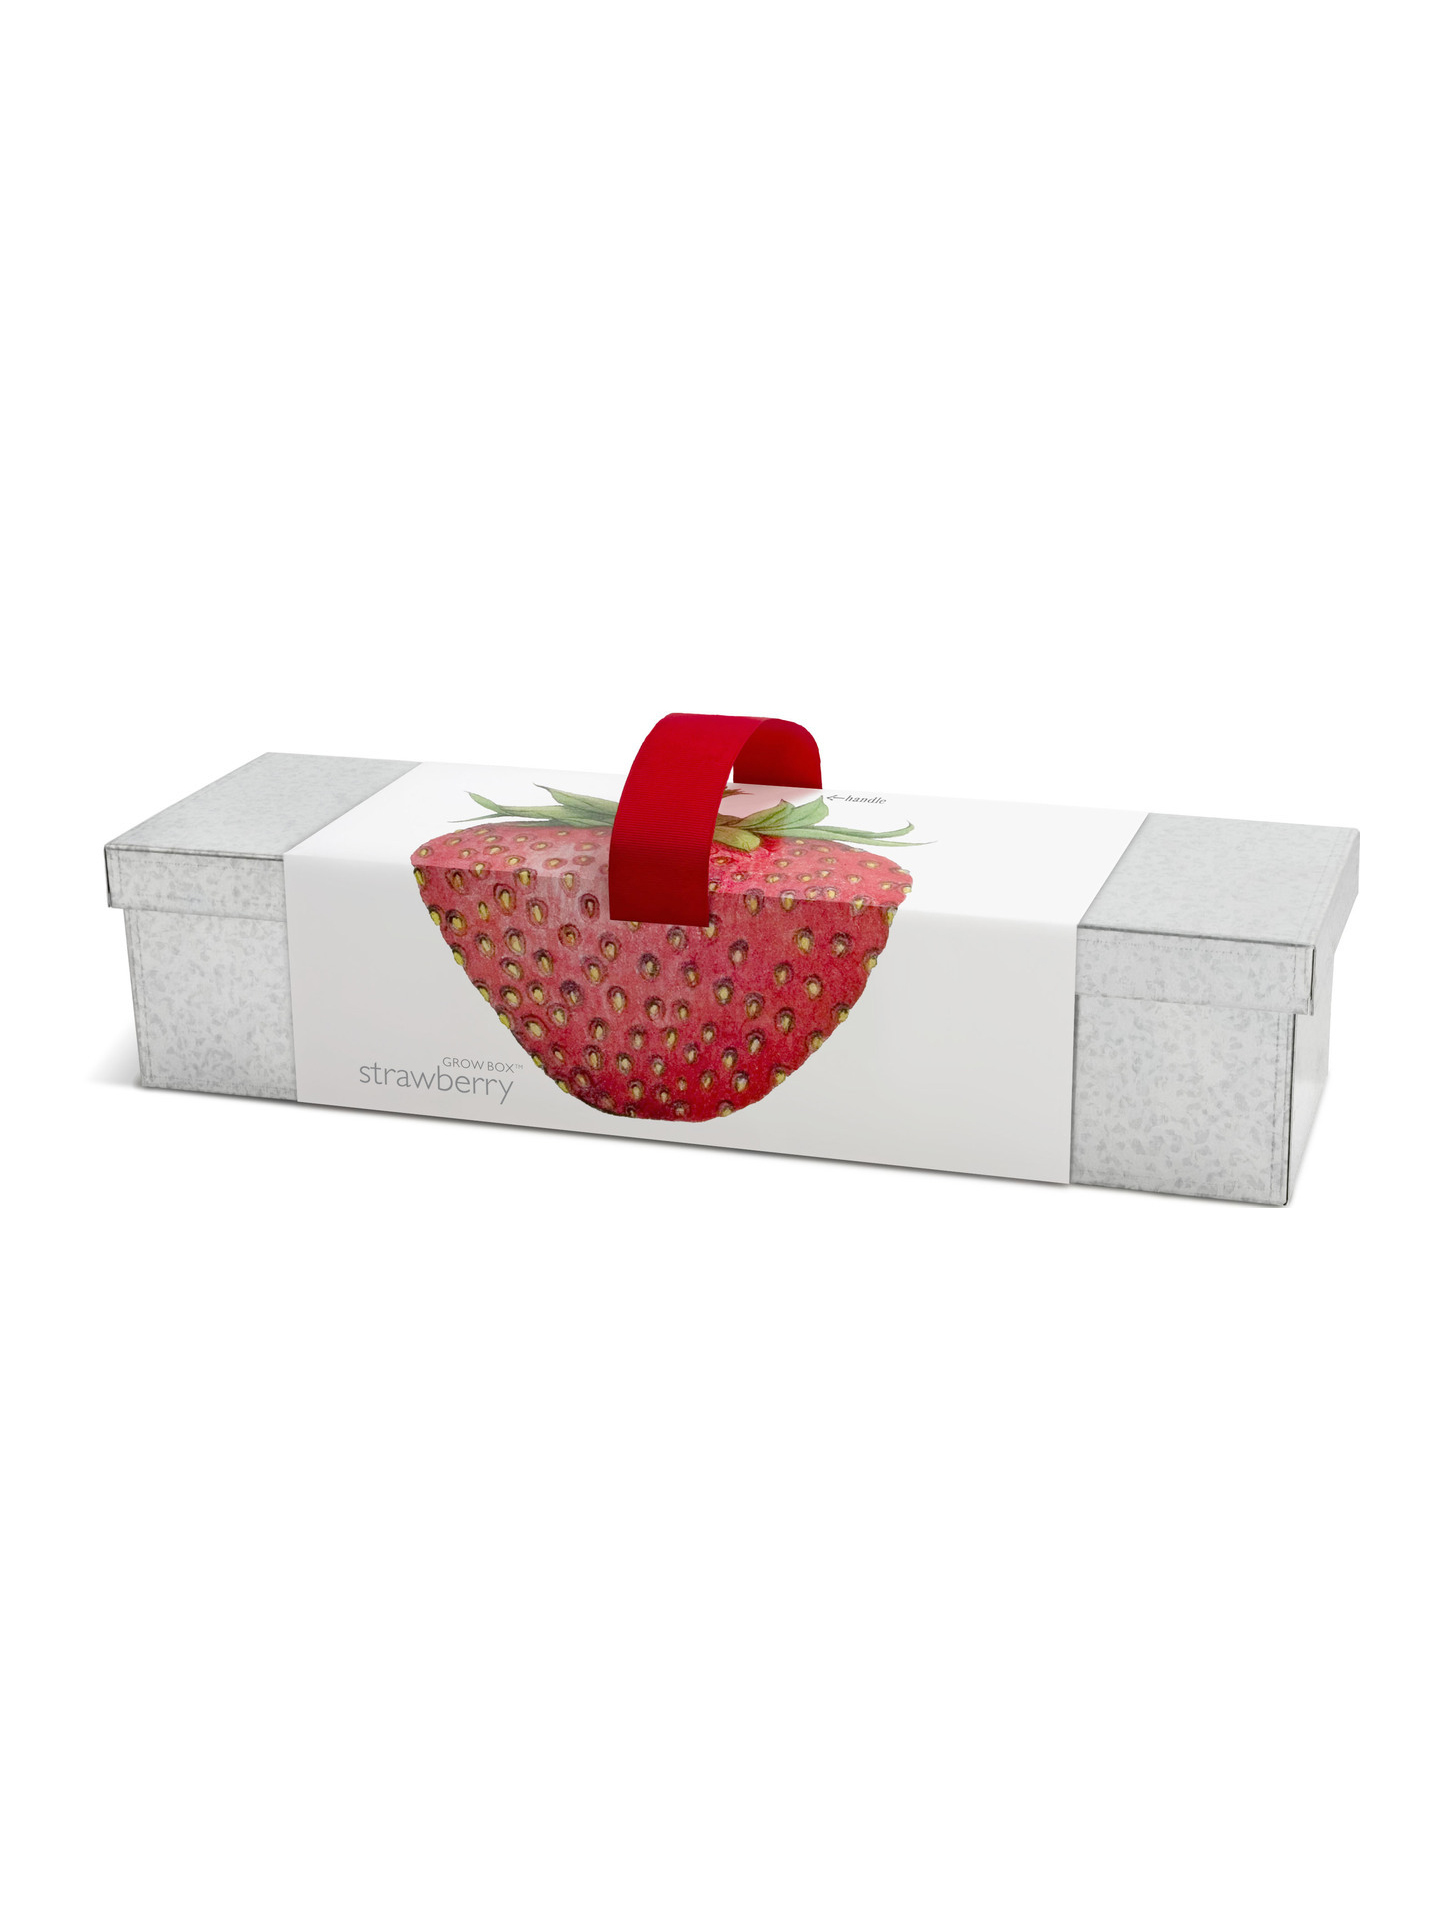 Potting Shed Creations Window Box Strawberry